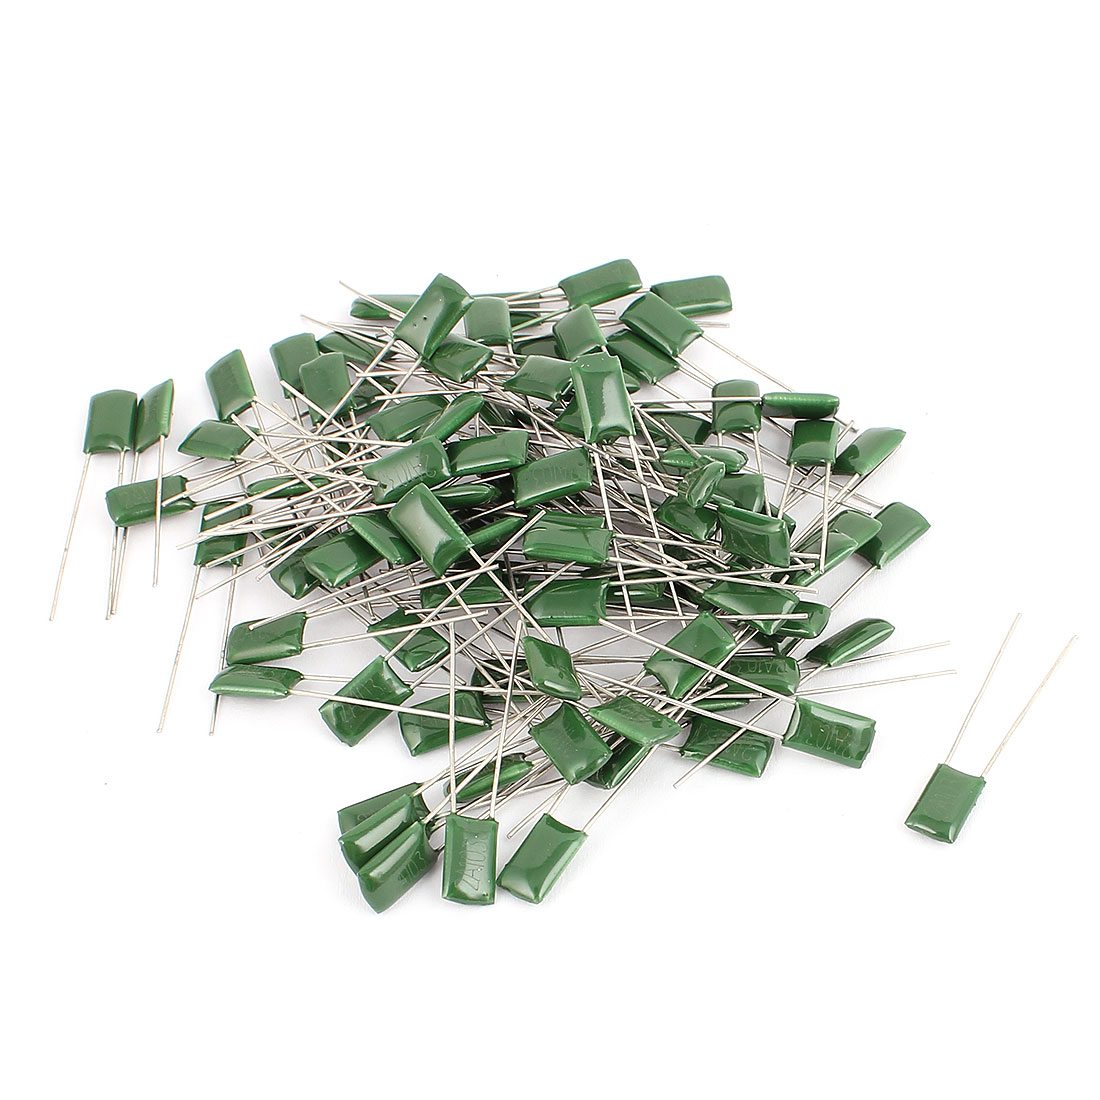 100pcs Radial Leads Polyester Film Cap Capacitors Green 100V 0.01UF